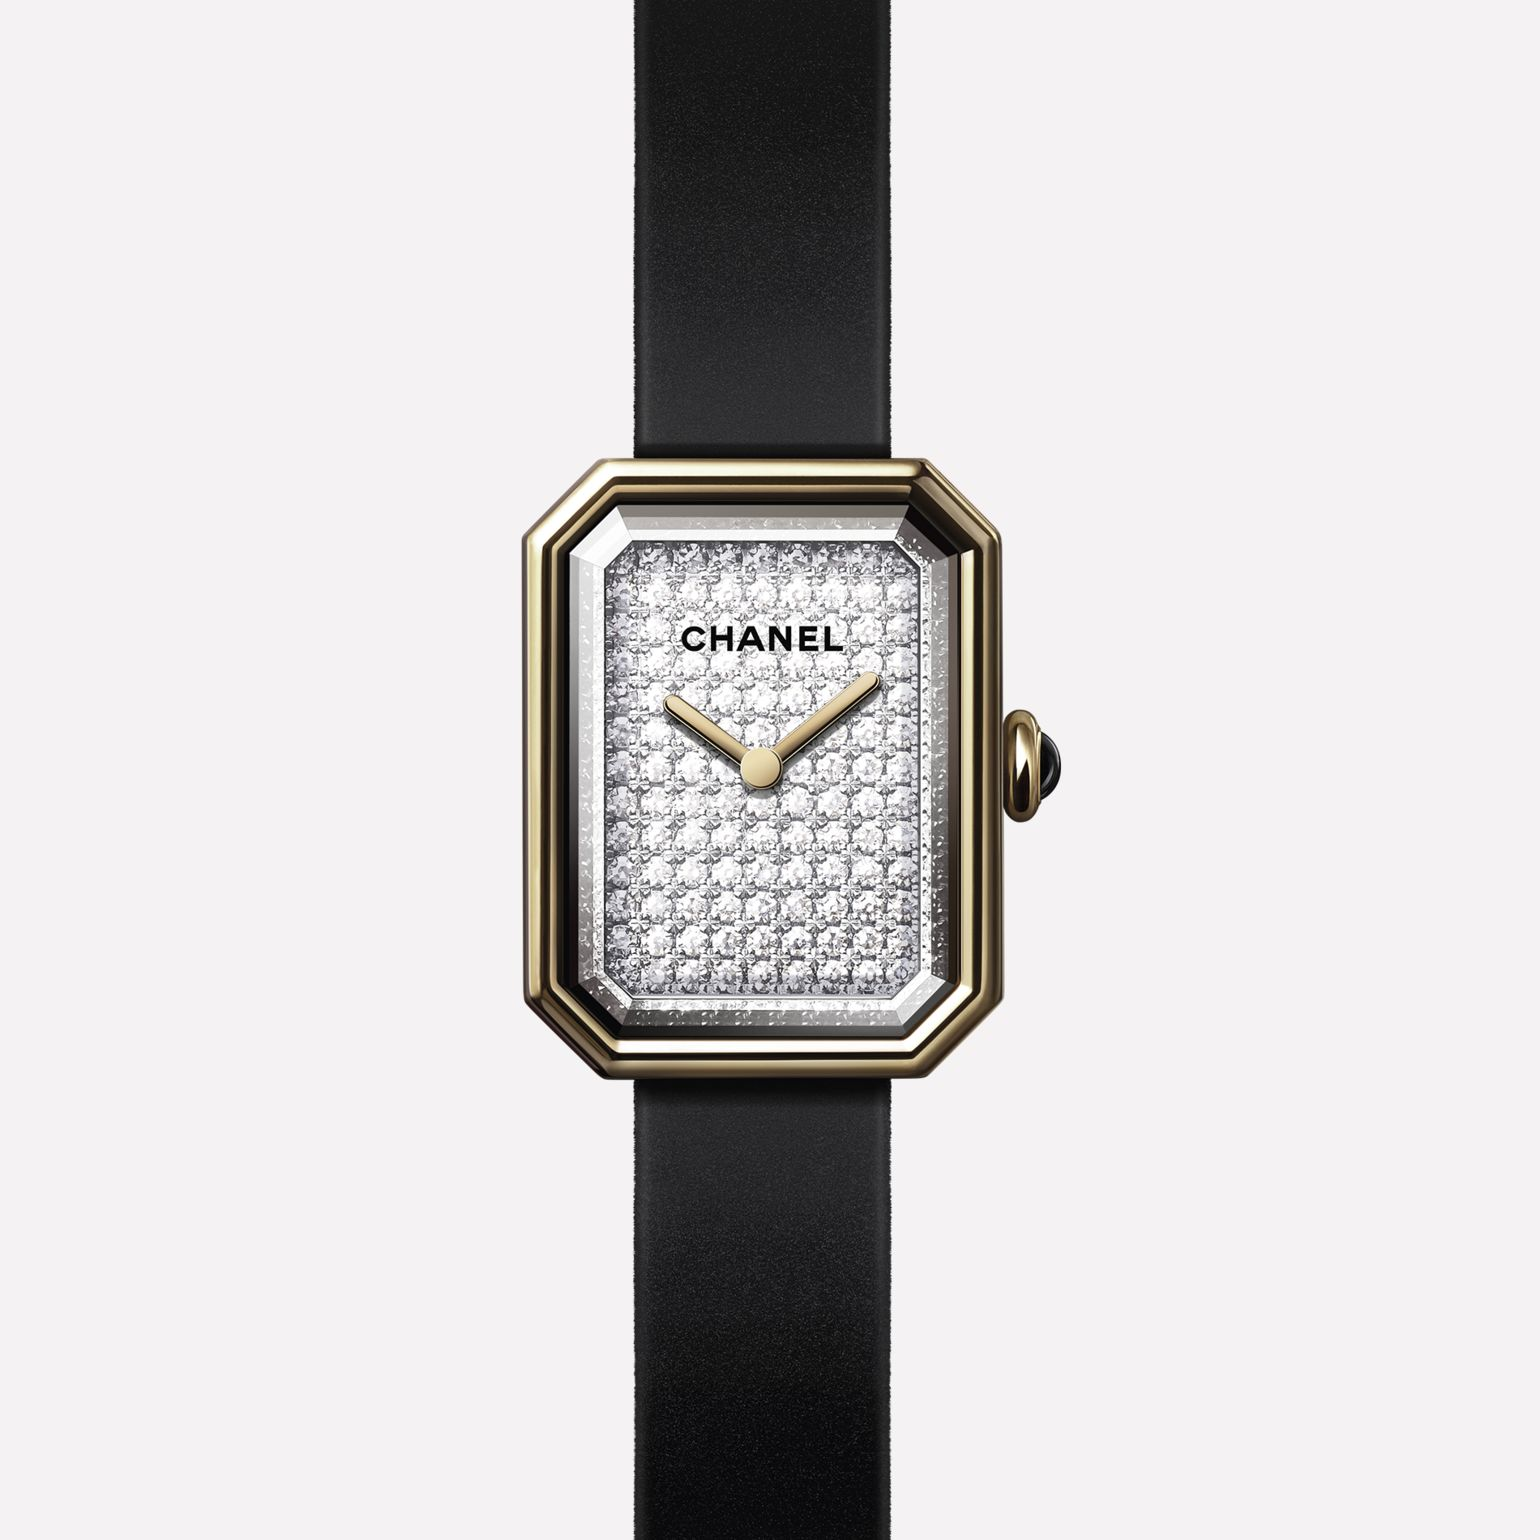 Première Velours Watch Yellow gold and titanium, black rubber strap with velvet touch, dial set with brilliant-cut diamonds